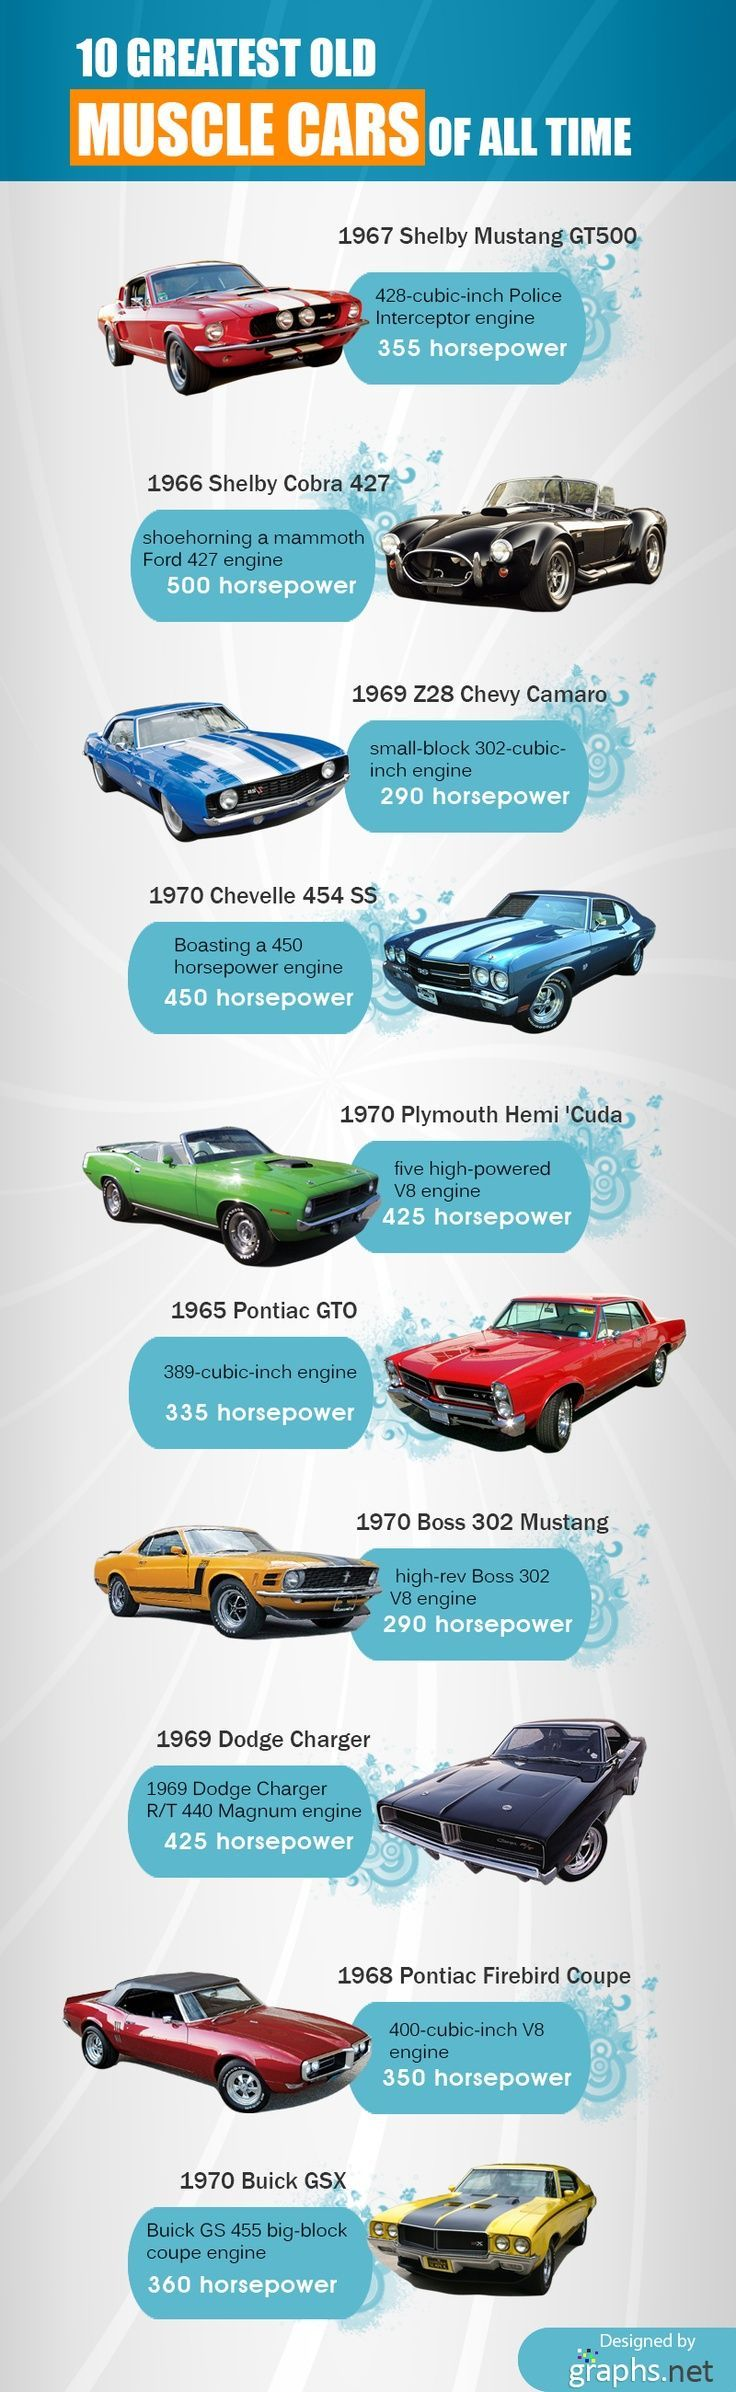 Greatest Old Muscle Cars Of All Time Cars Pinterest Cars - List of old cars